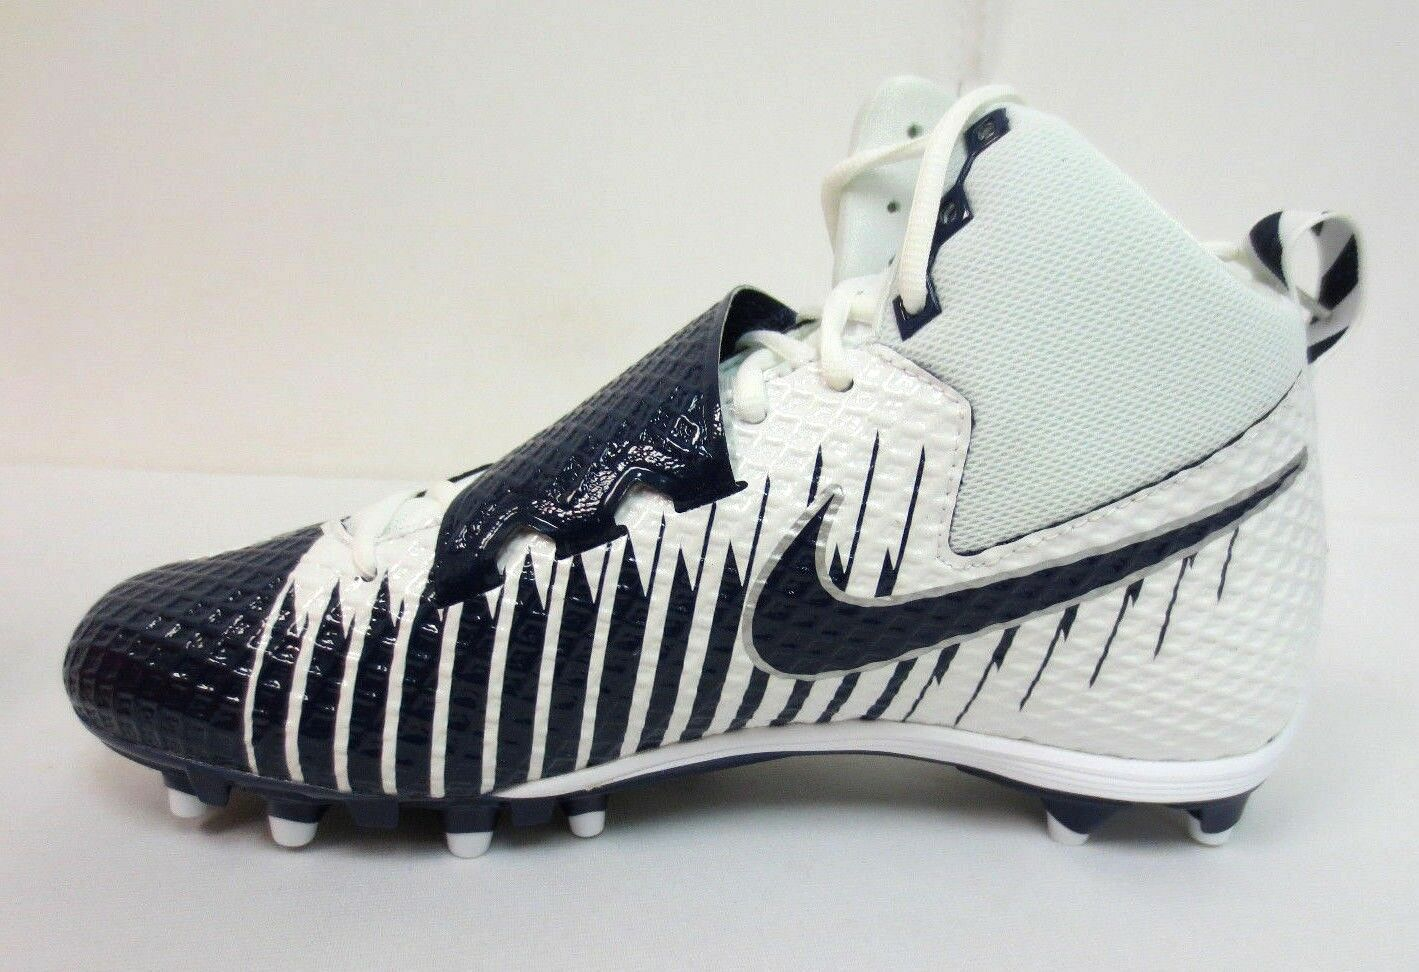 NIKE LUNARBEAST PRO TD CF CLEATS FOOTBALL 847550 144 Size 14 New with out box